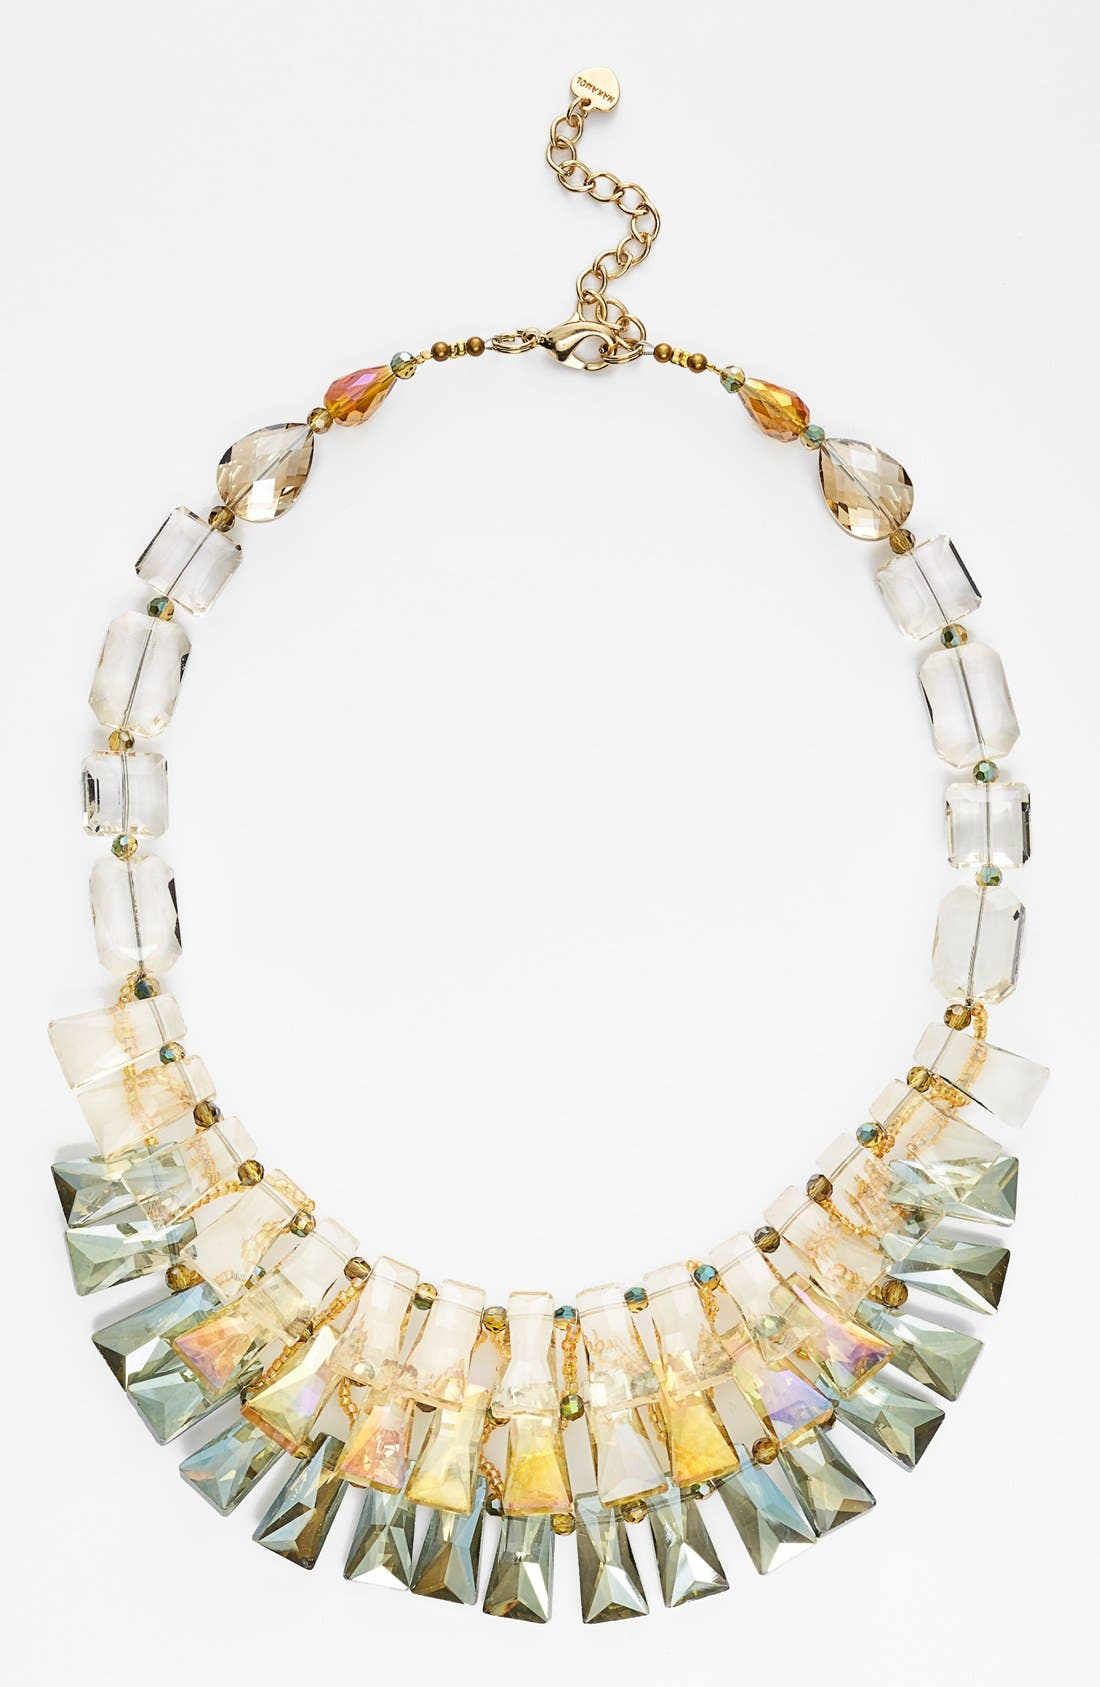 Main Image - Nakamol Design Tiered Crystal Bib Necklace